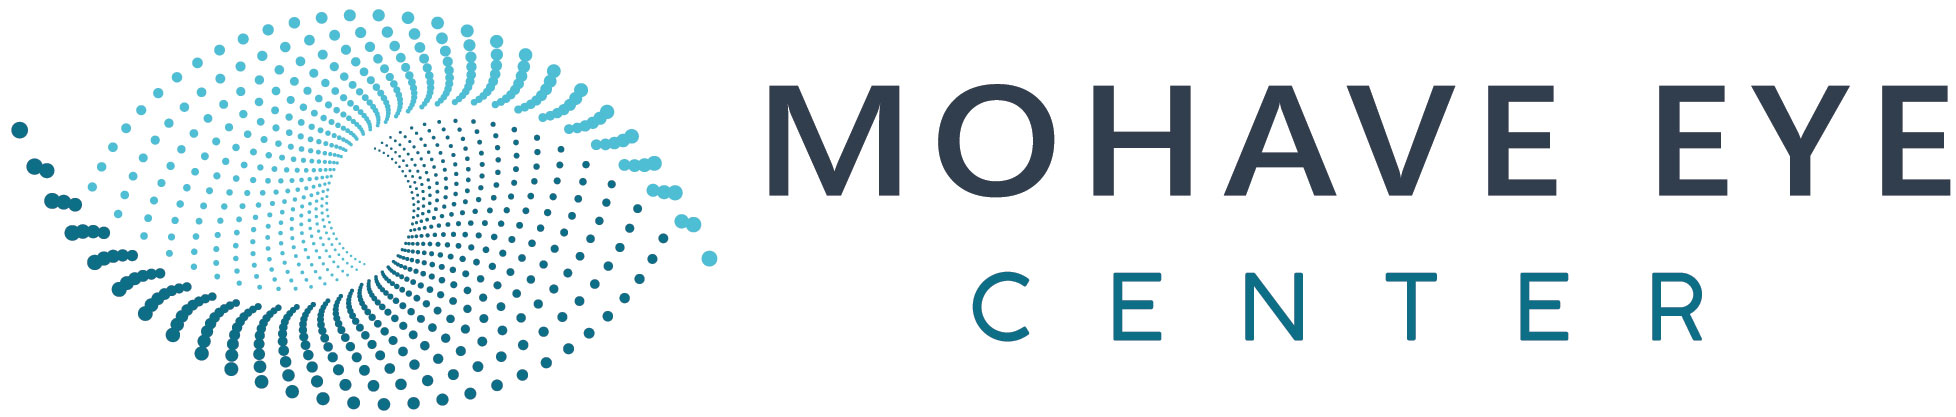 mohave-eye_logo2.jpg